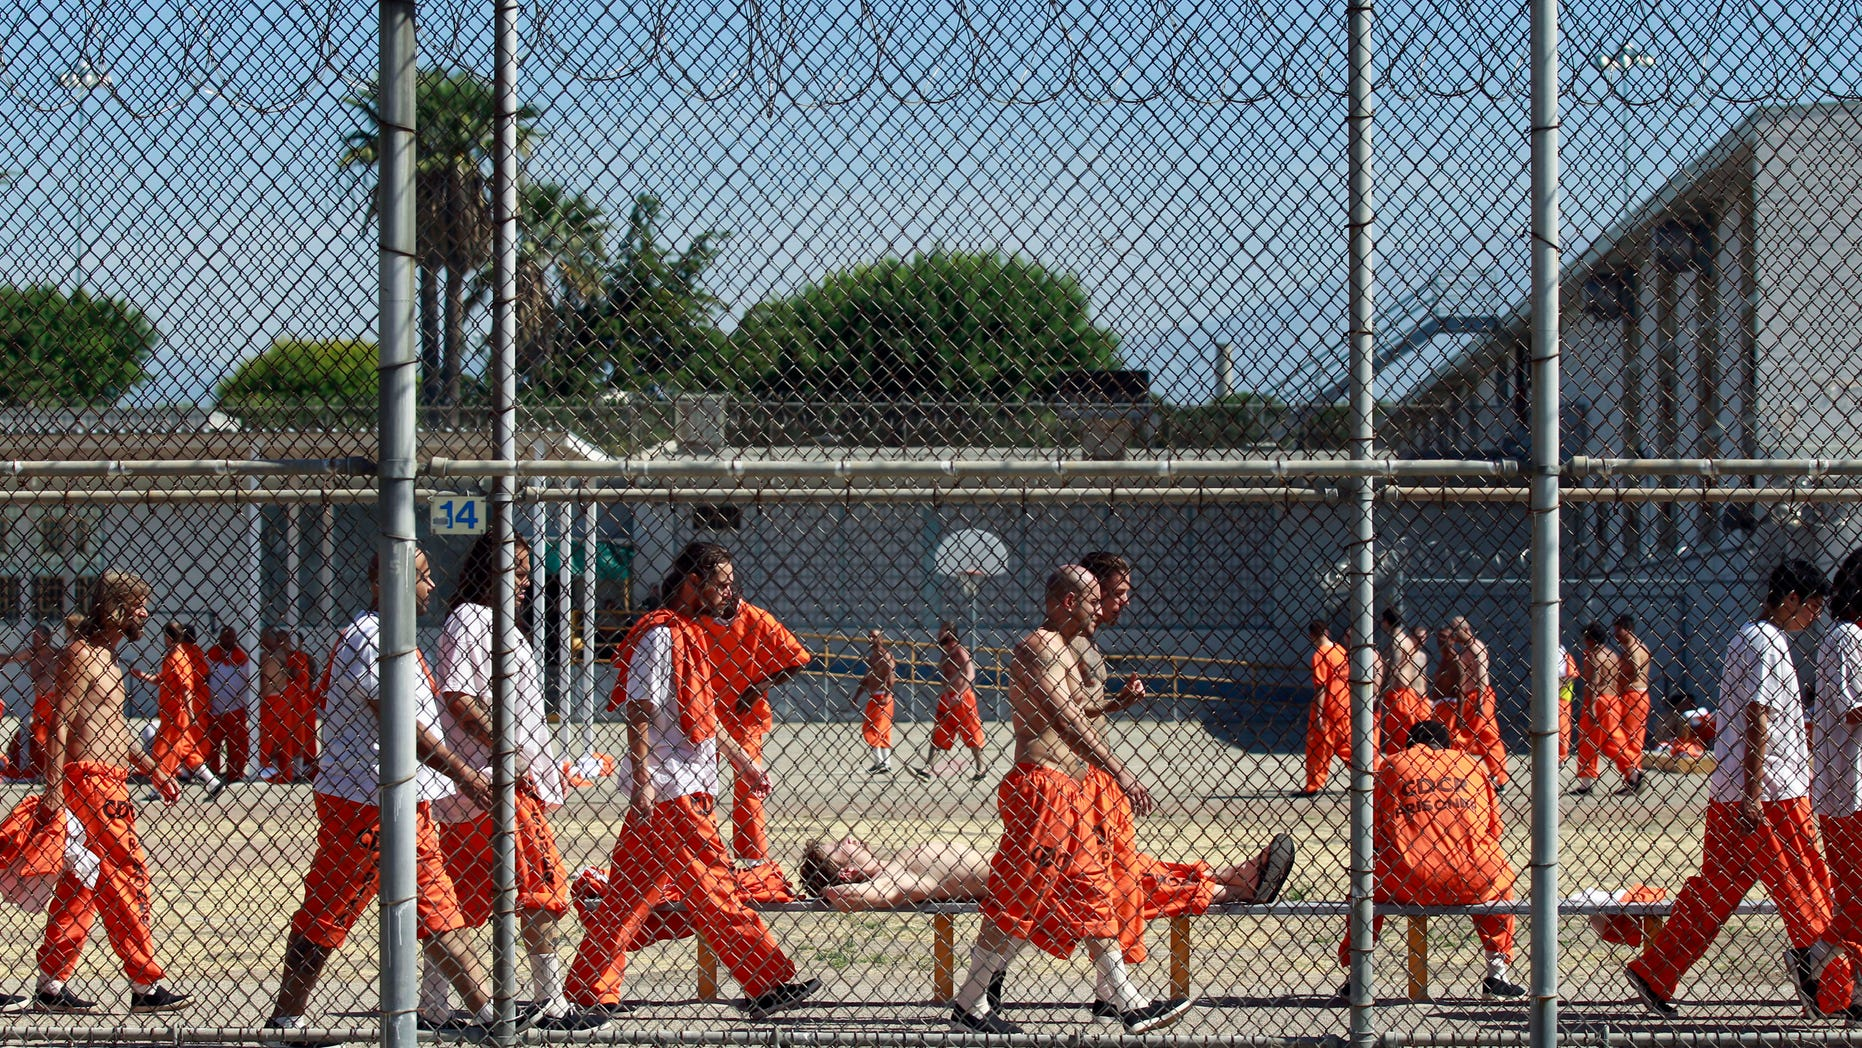 June 3, 2011: Inmates walk around an exercise yard at the California Institution for Men state prison in Chino, California.